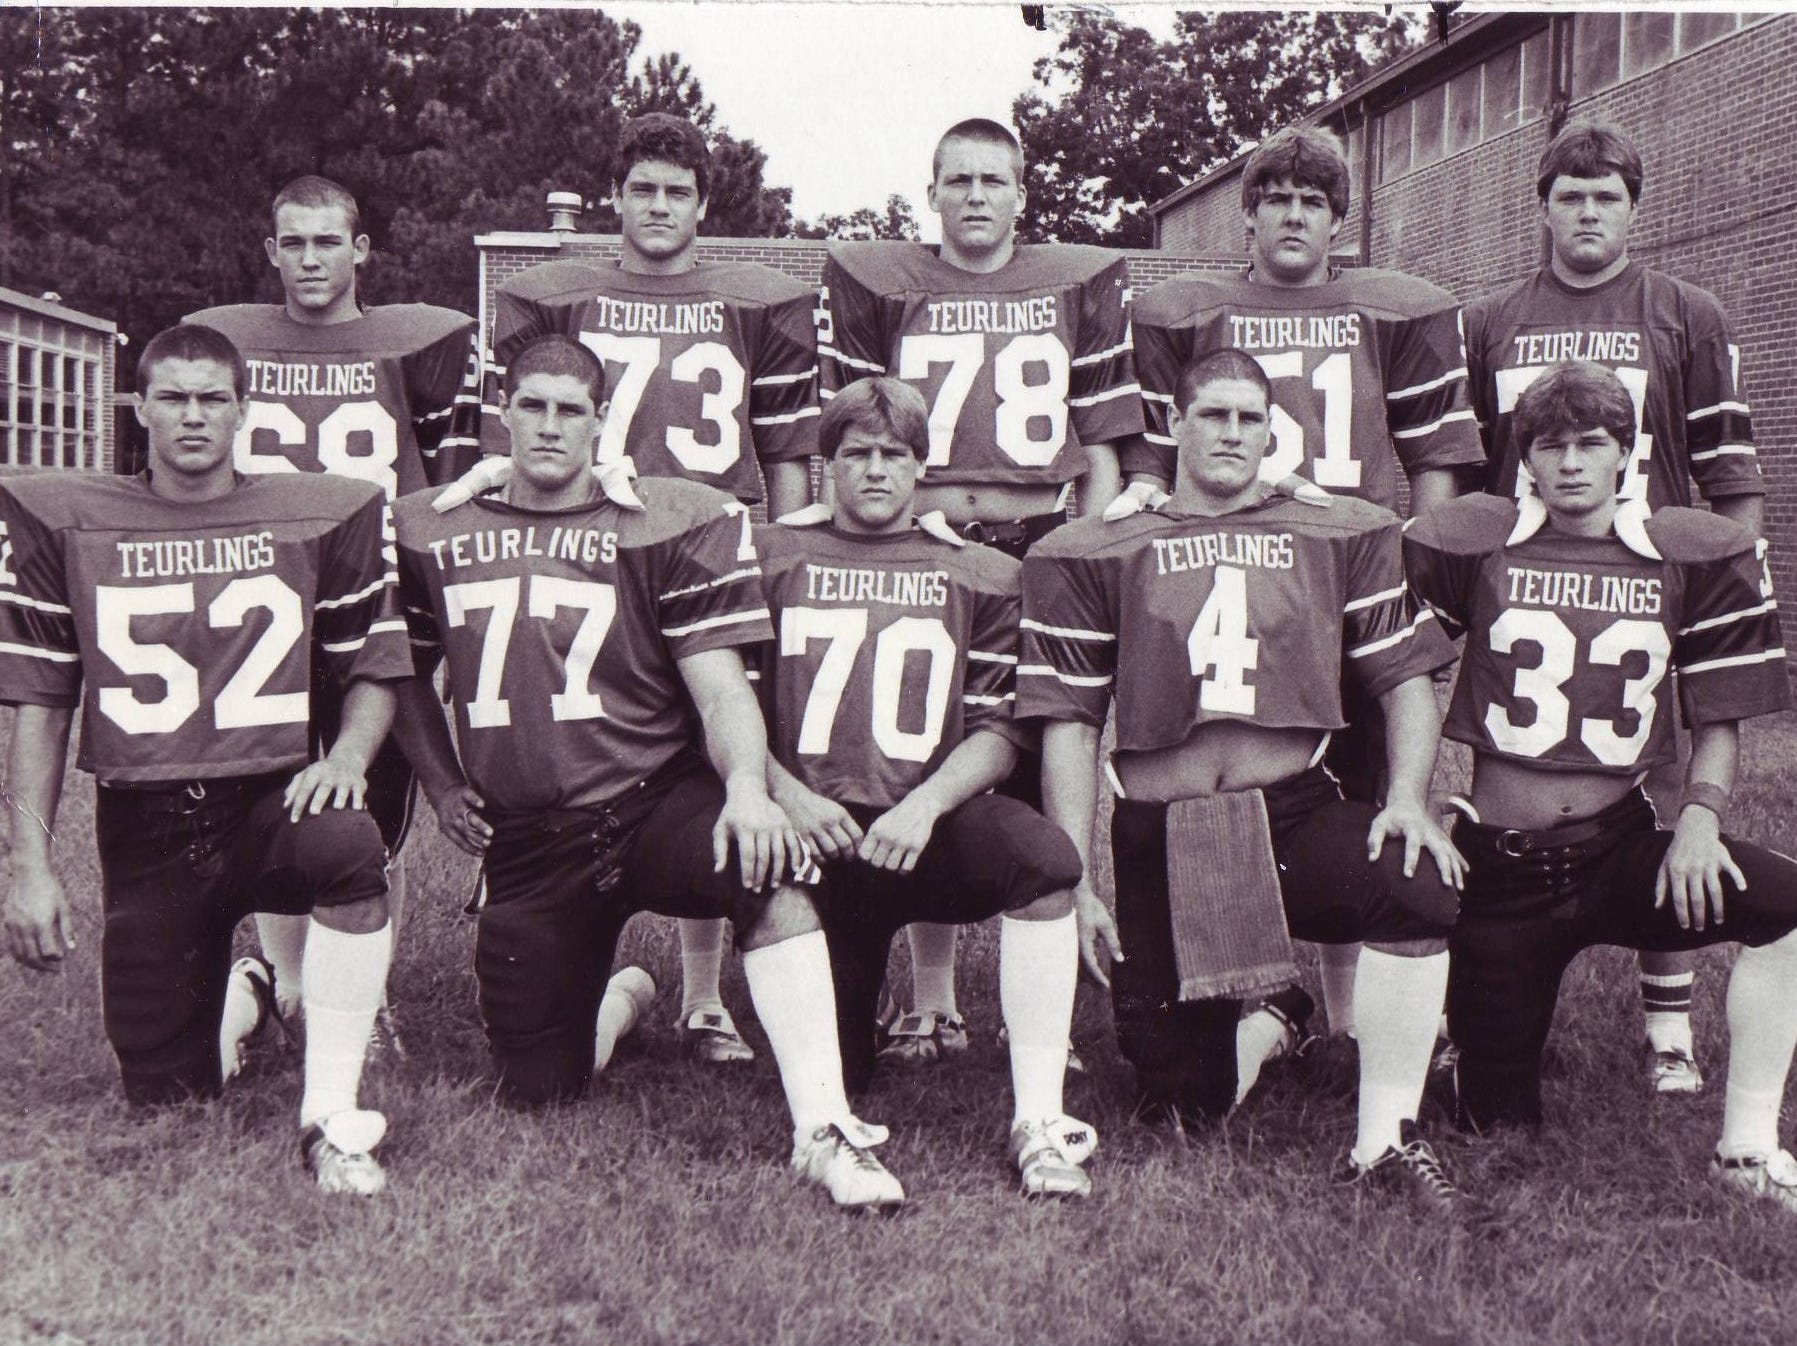 Members of the Teurlings Catholic Rebels during those glory years of the early 1980s.